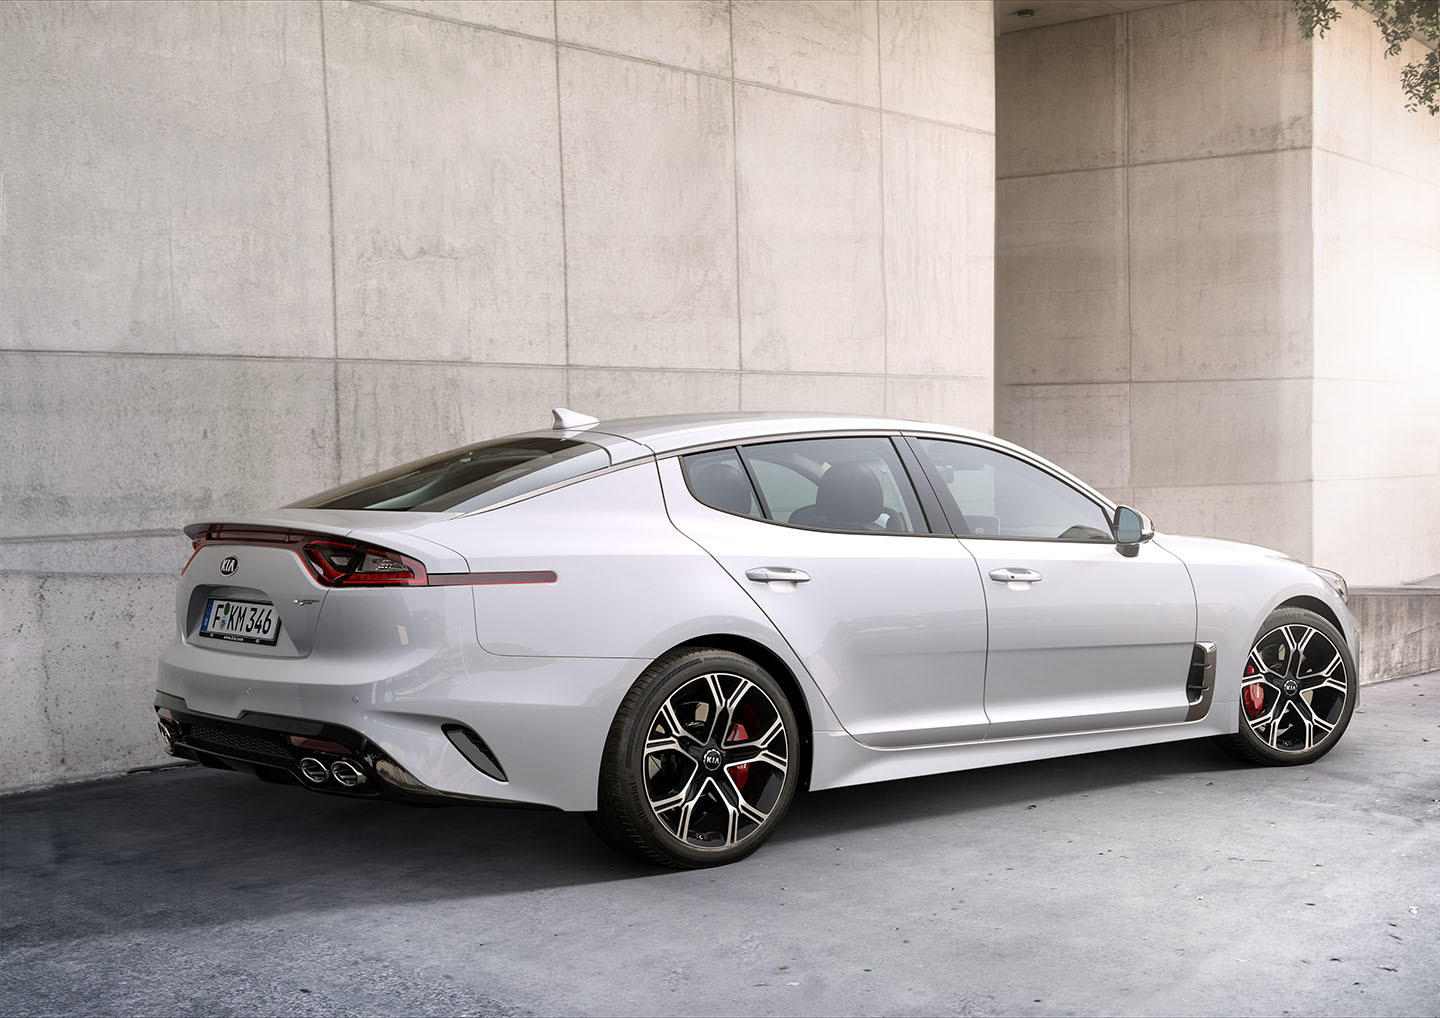 ... of the 2018 Kia Stinger. Kia's first sedan with available AWD, it has a  new Dynamic Stability Damping Control suspension that adapts to your  driving.